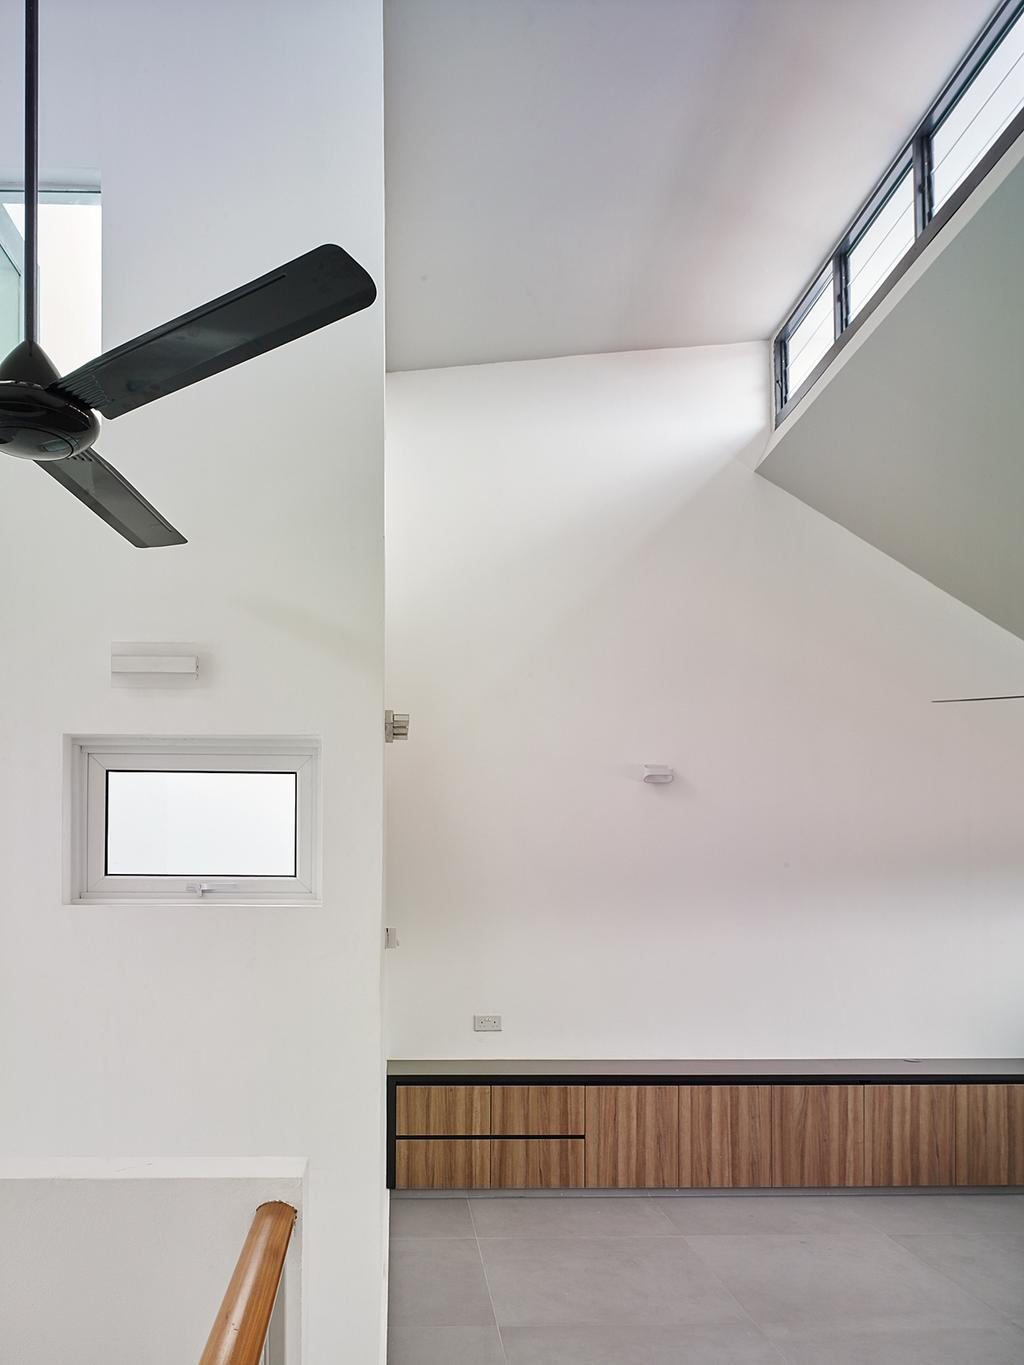 Modern, Landed, House at TS, Architect, OWMF Architecture, Architecture, Building, Skylight, Window